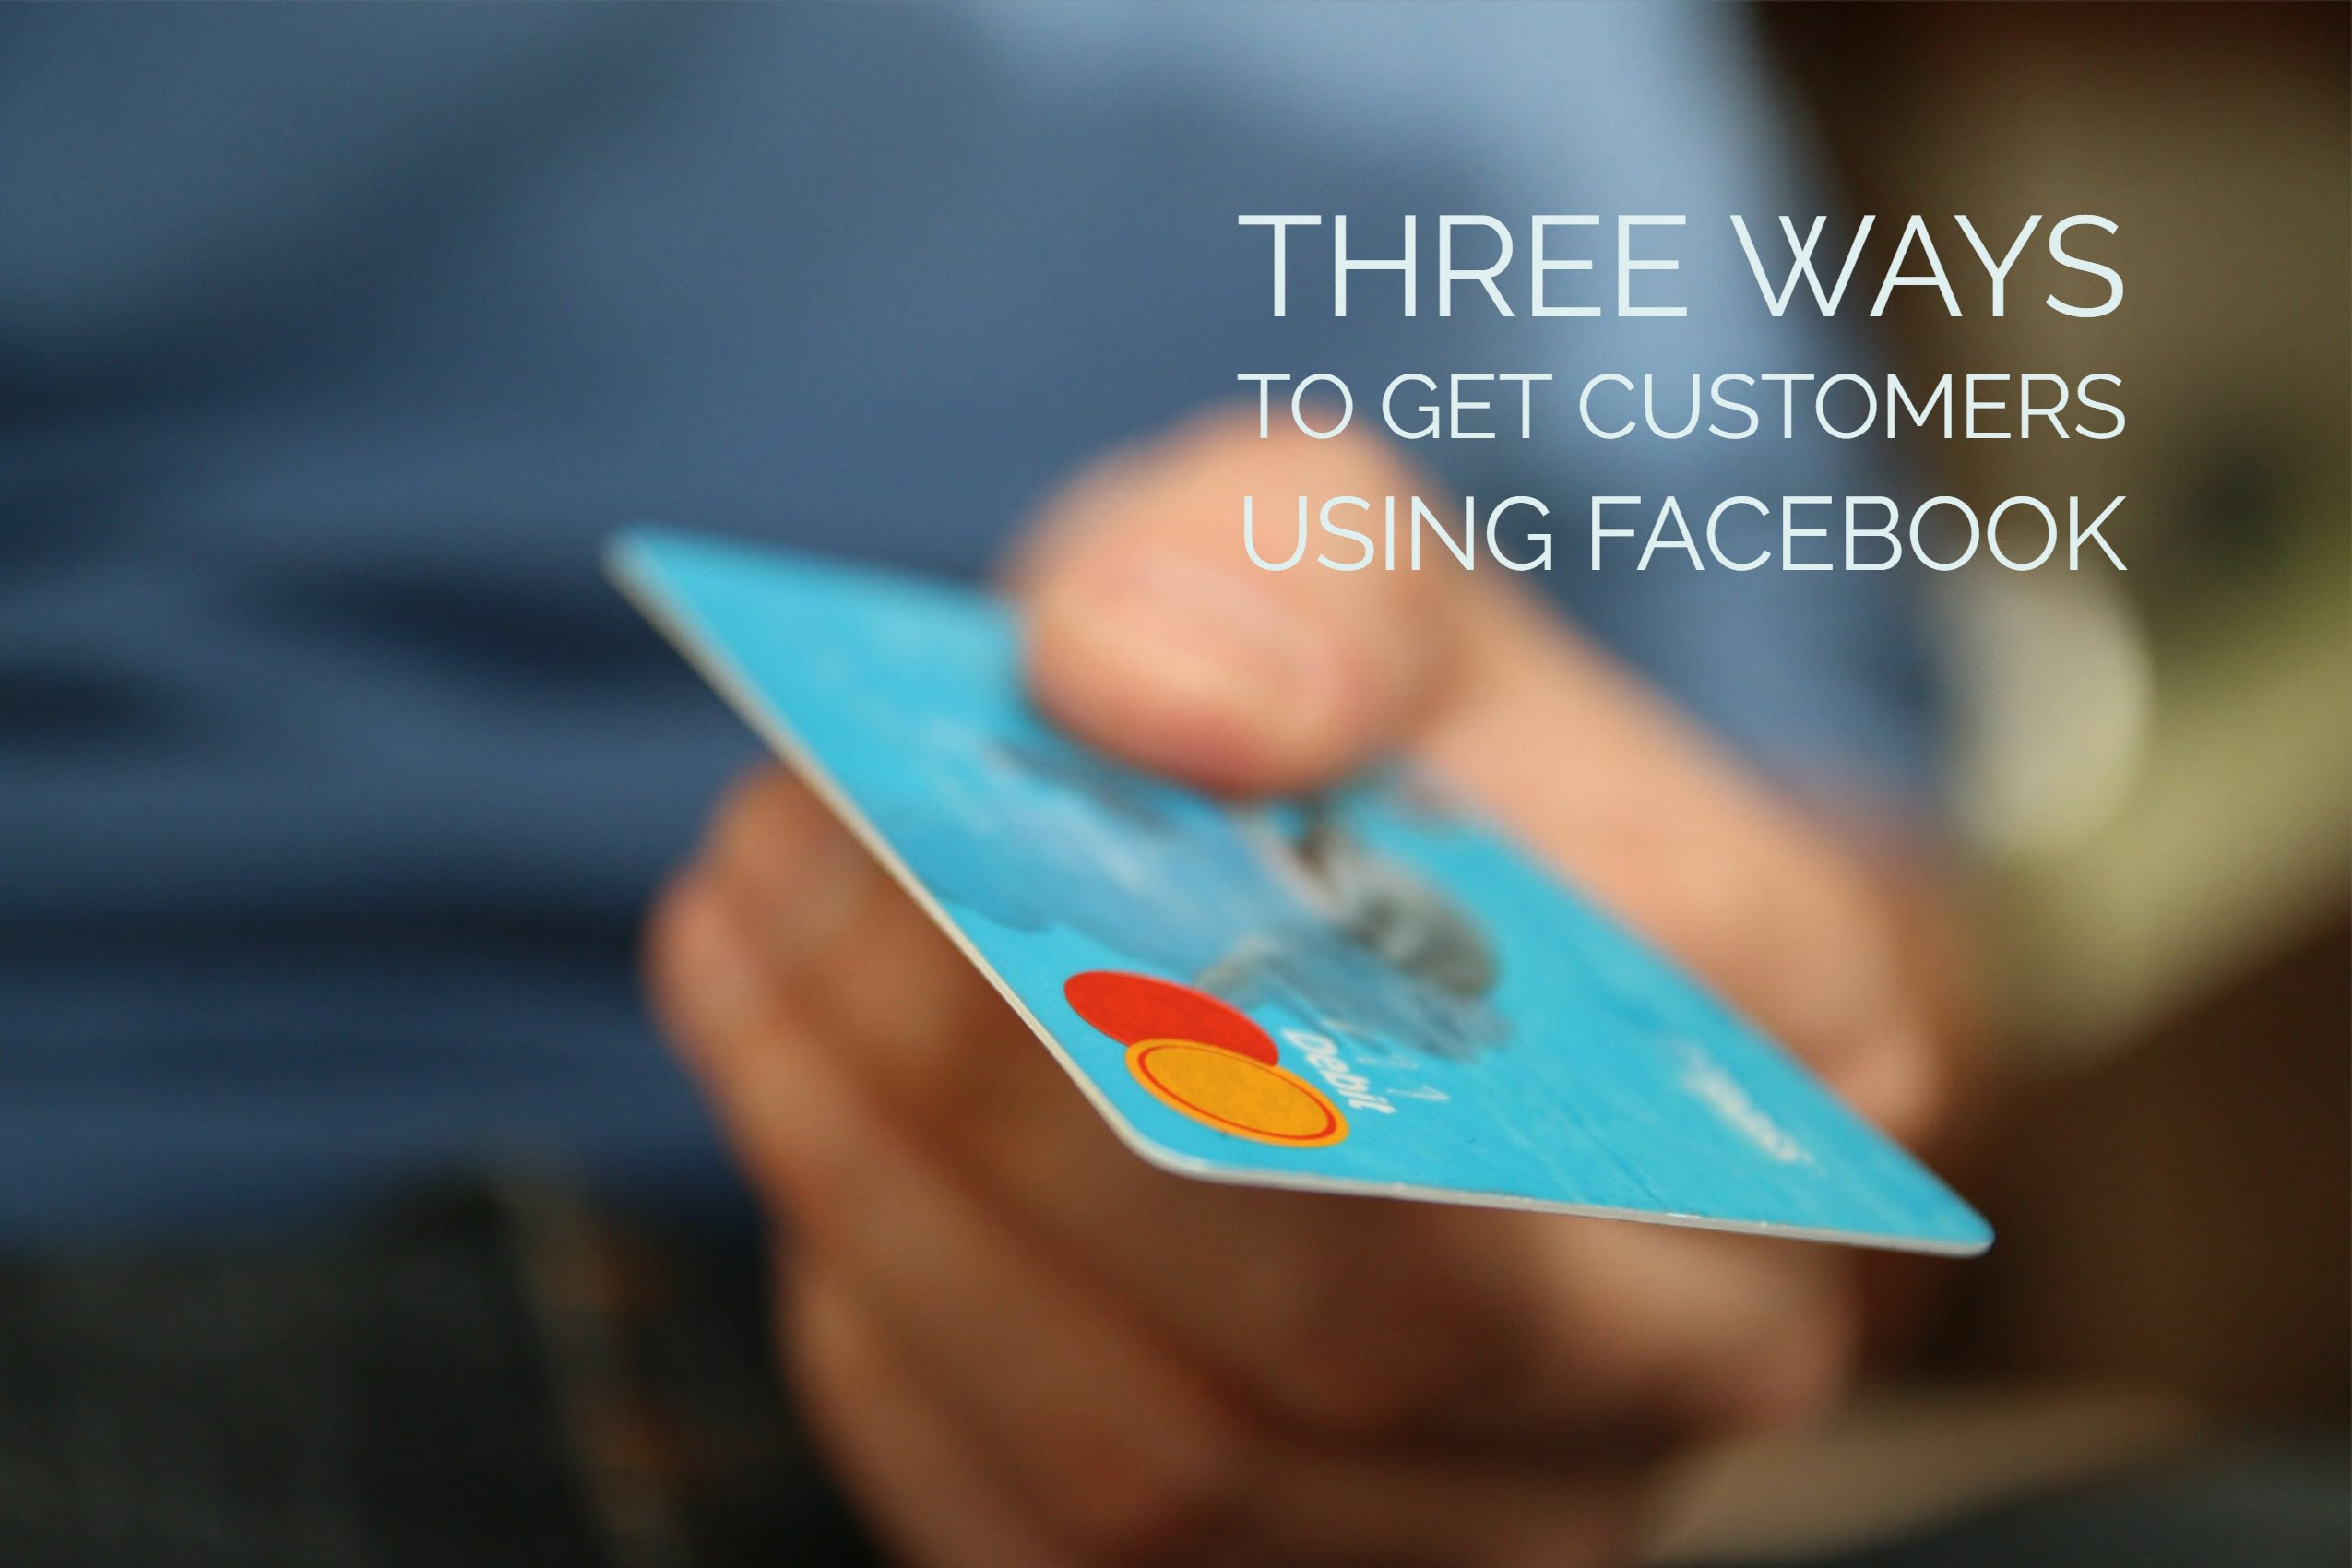 Three Ways to Get Customers Using Facebook